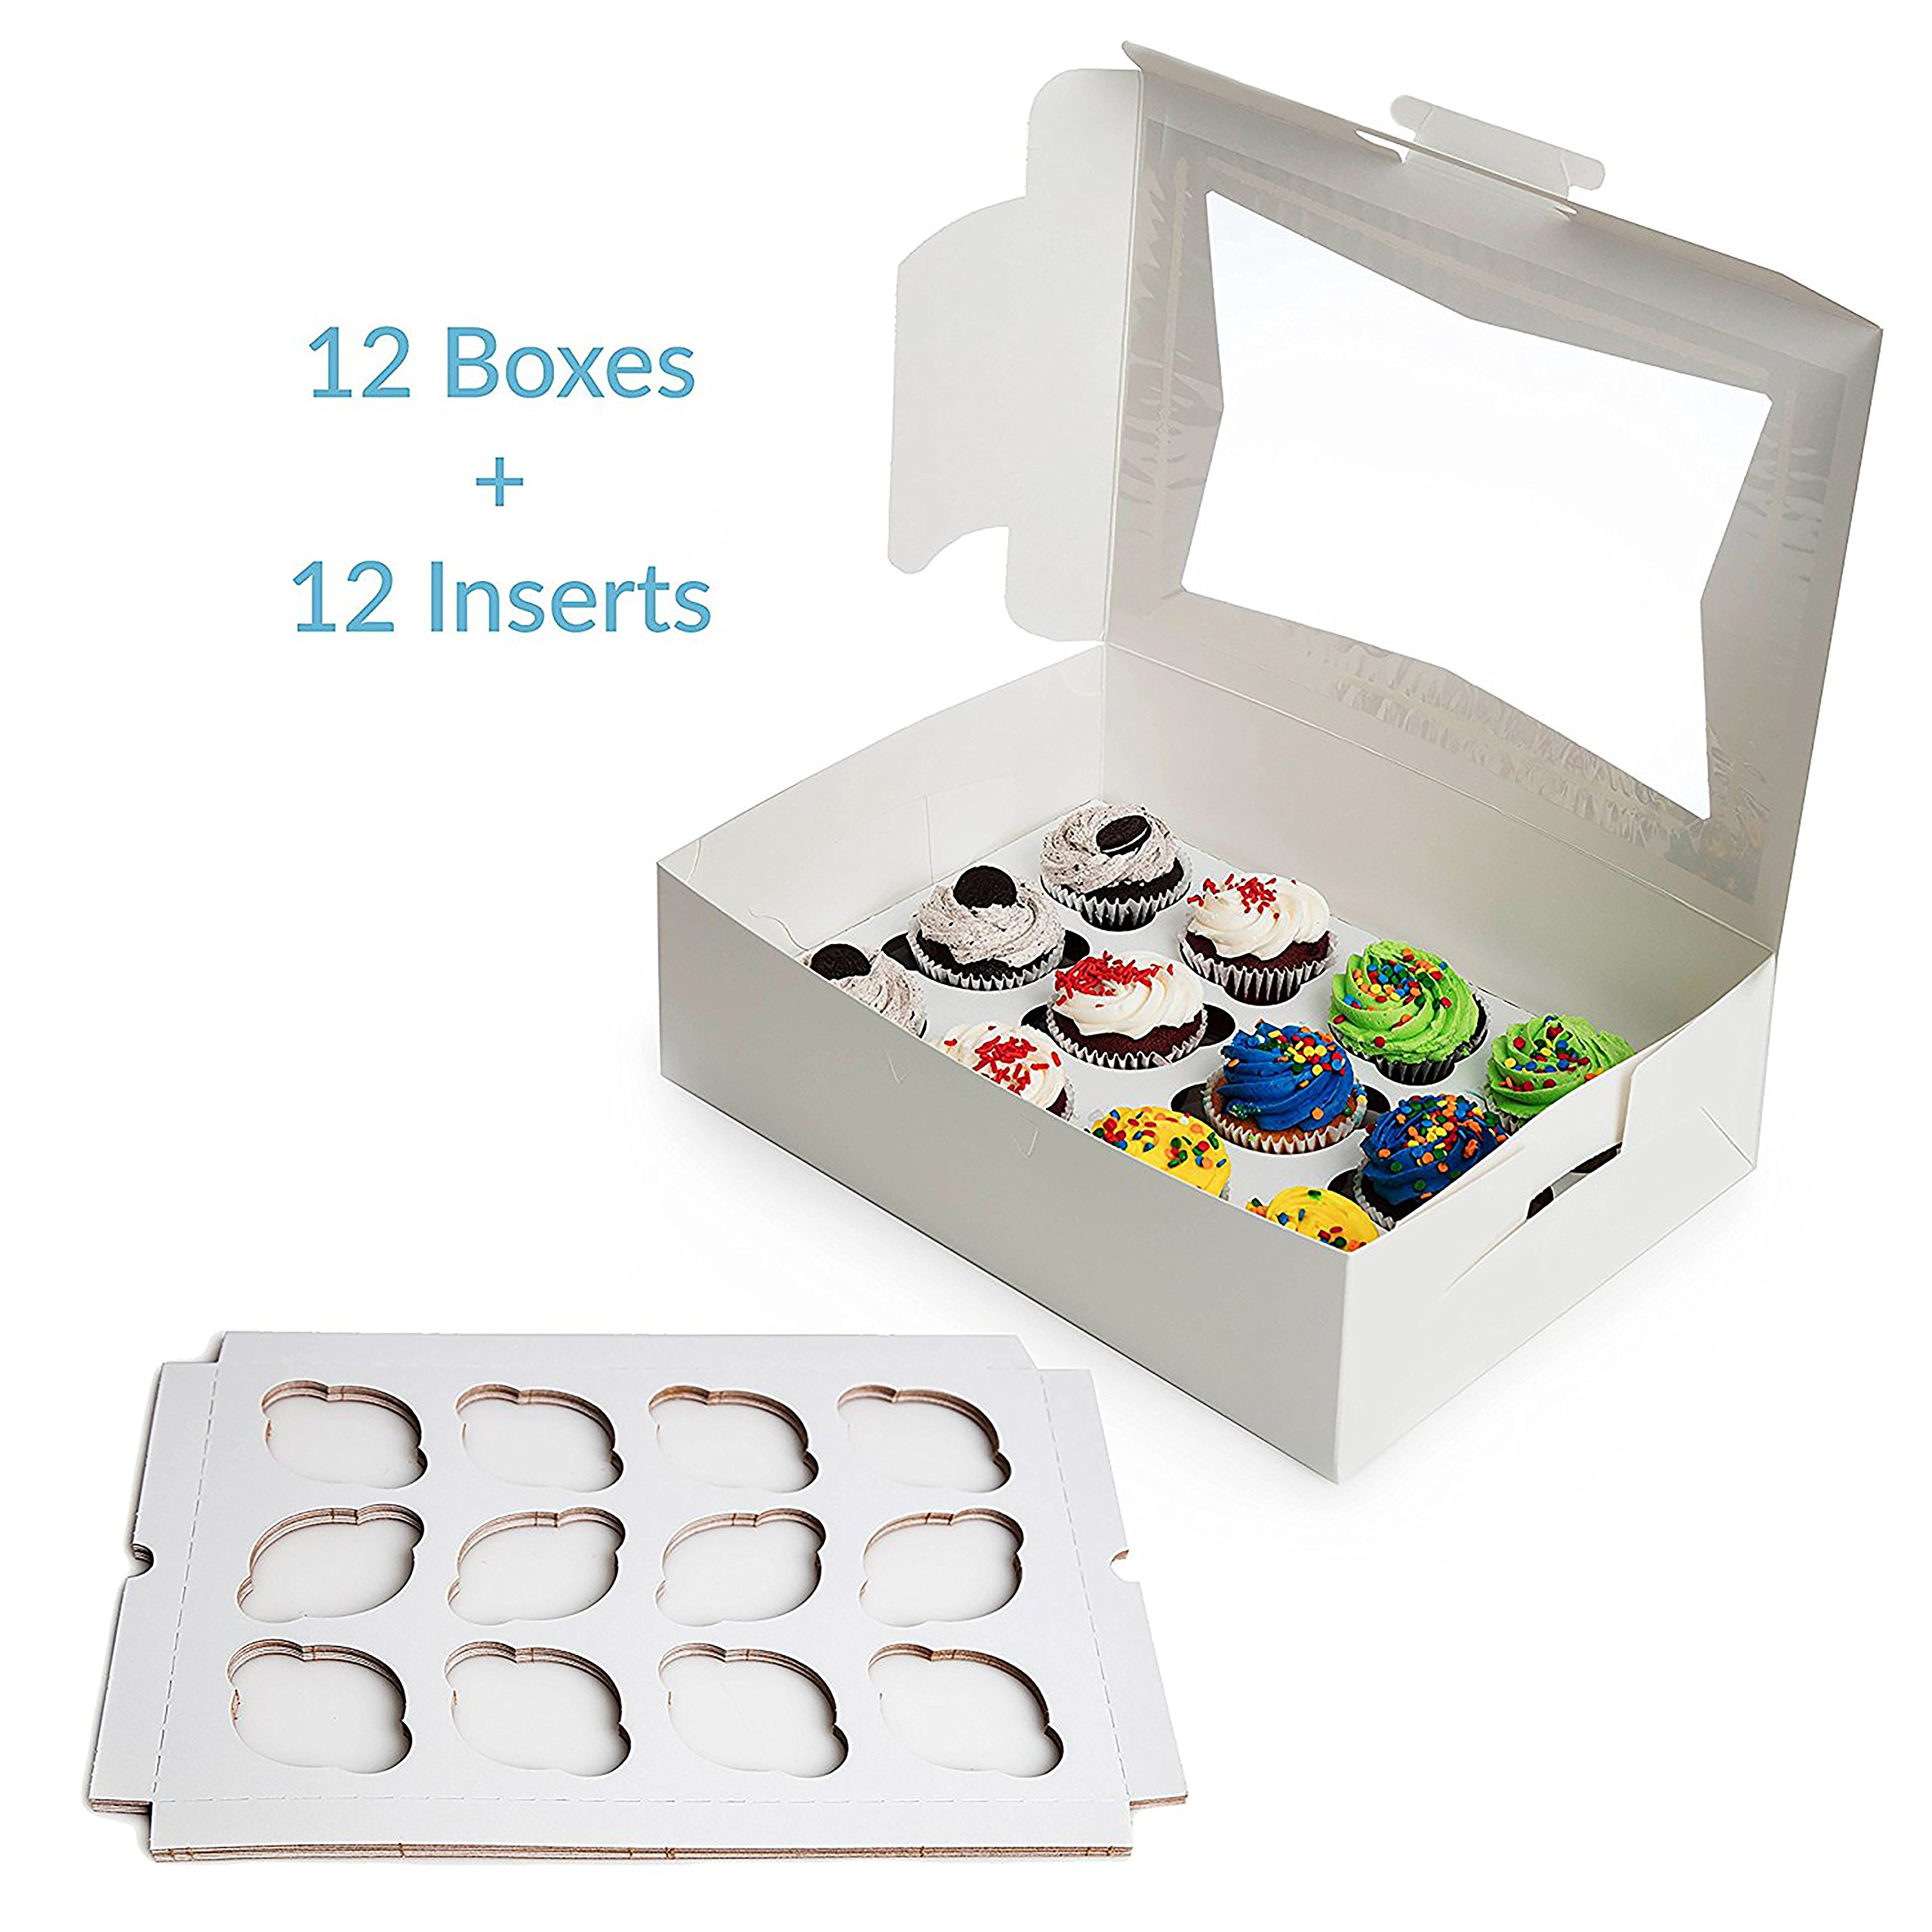 Paperboard Cupcake Boxes with Inserts, Set of 12 Cupcake Container Bakery Window Display Box With Cupcake Inserts, Perfect for Transporting Cupcakes by Upper Midland Products